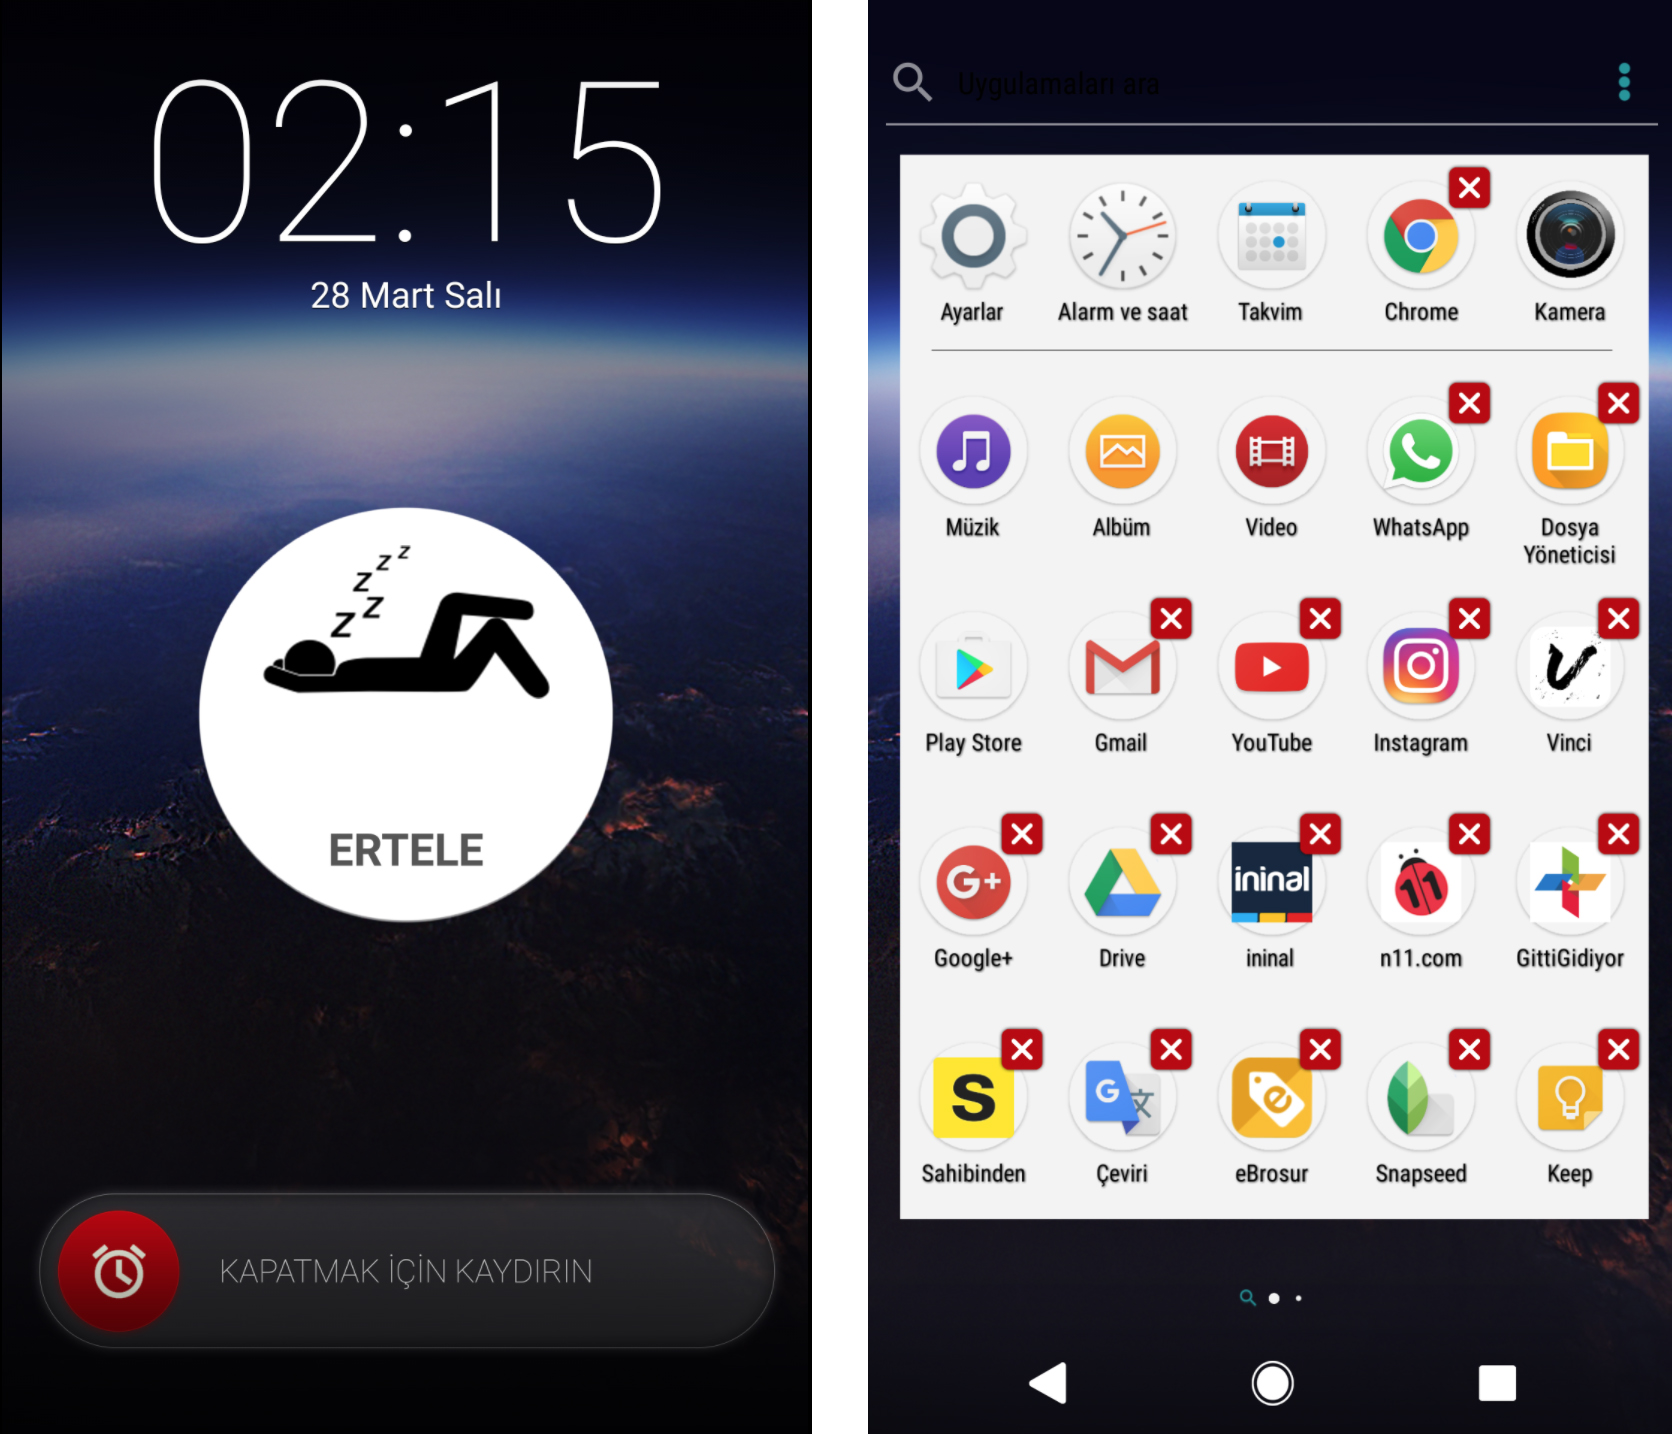 Gmail theme on android - Check Out More Sony Xperia Themes Here